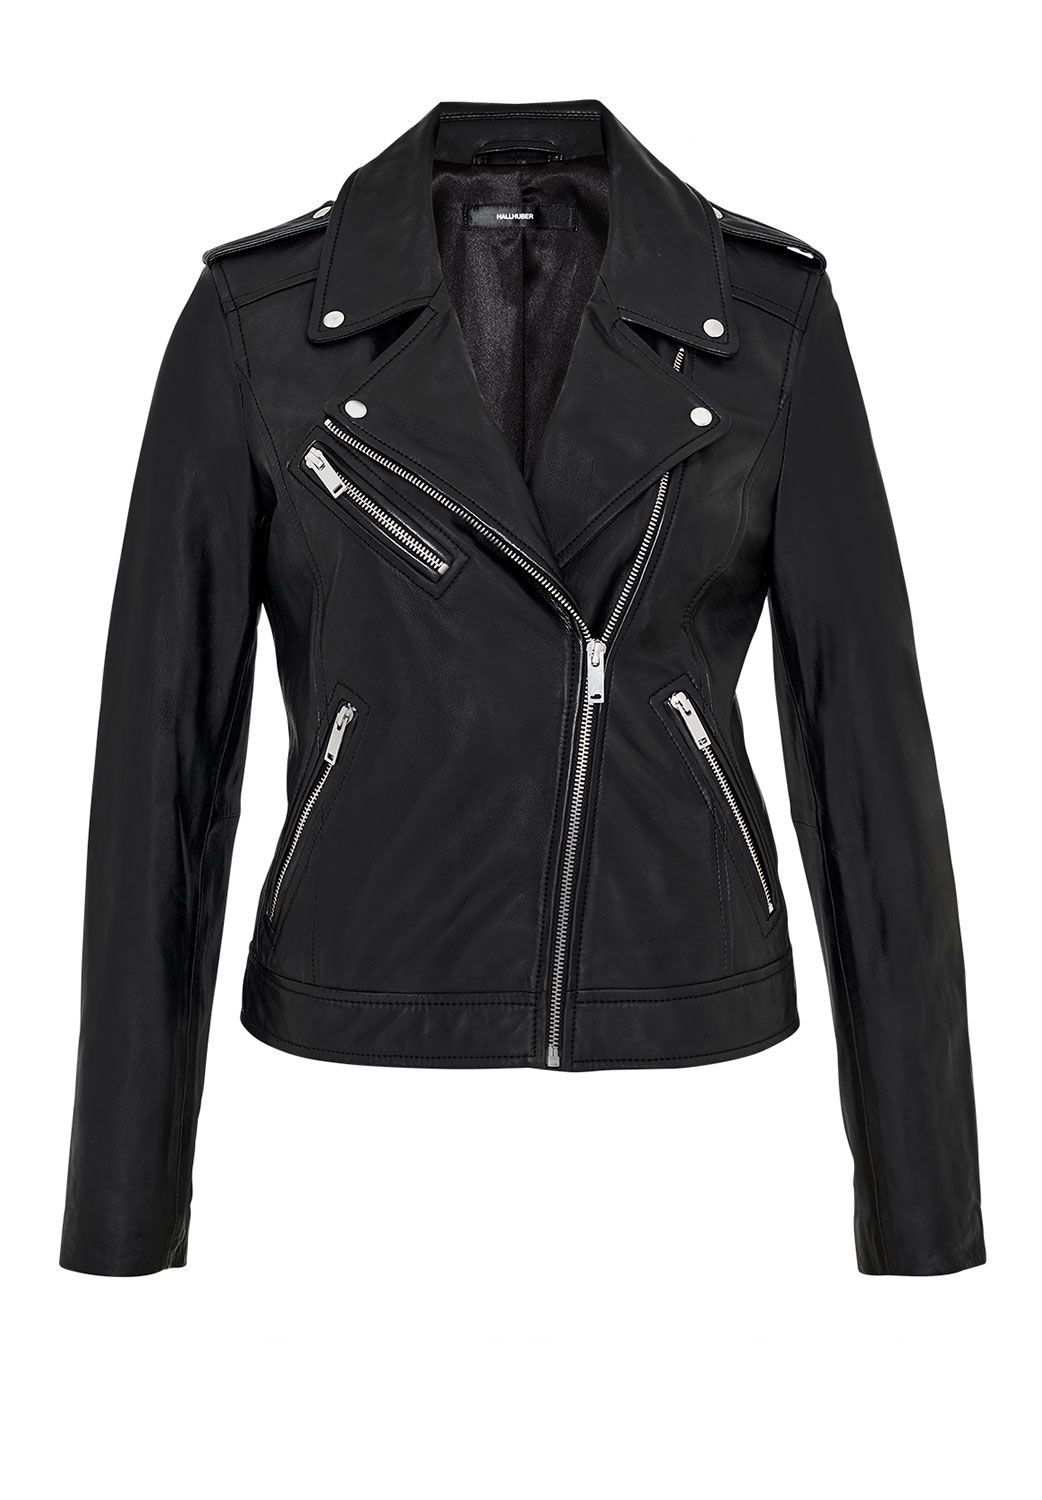 Hallhuber Leather biker jacket with zippers, Black